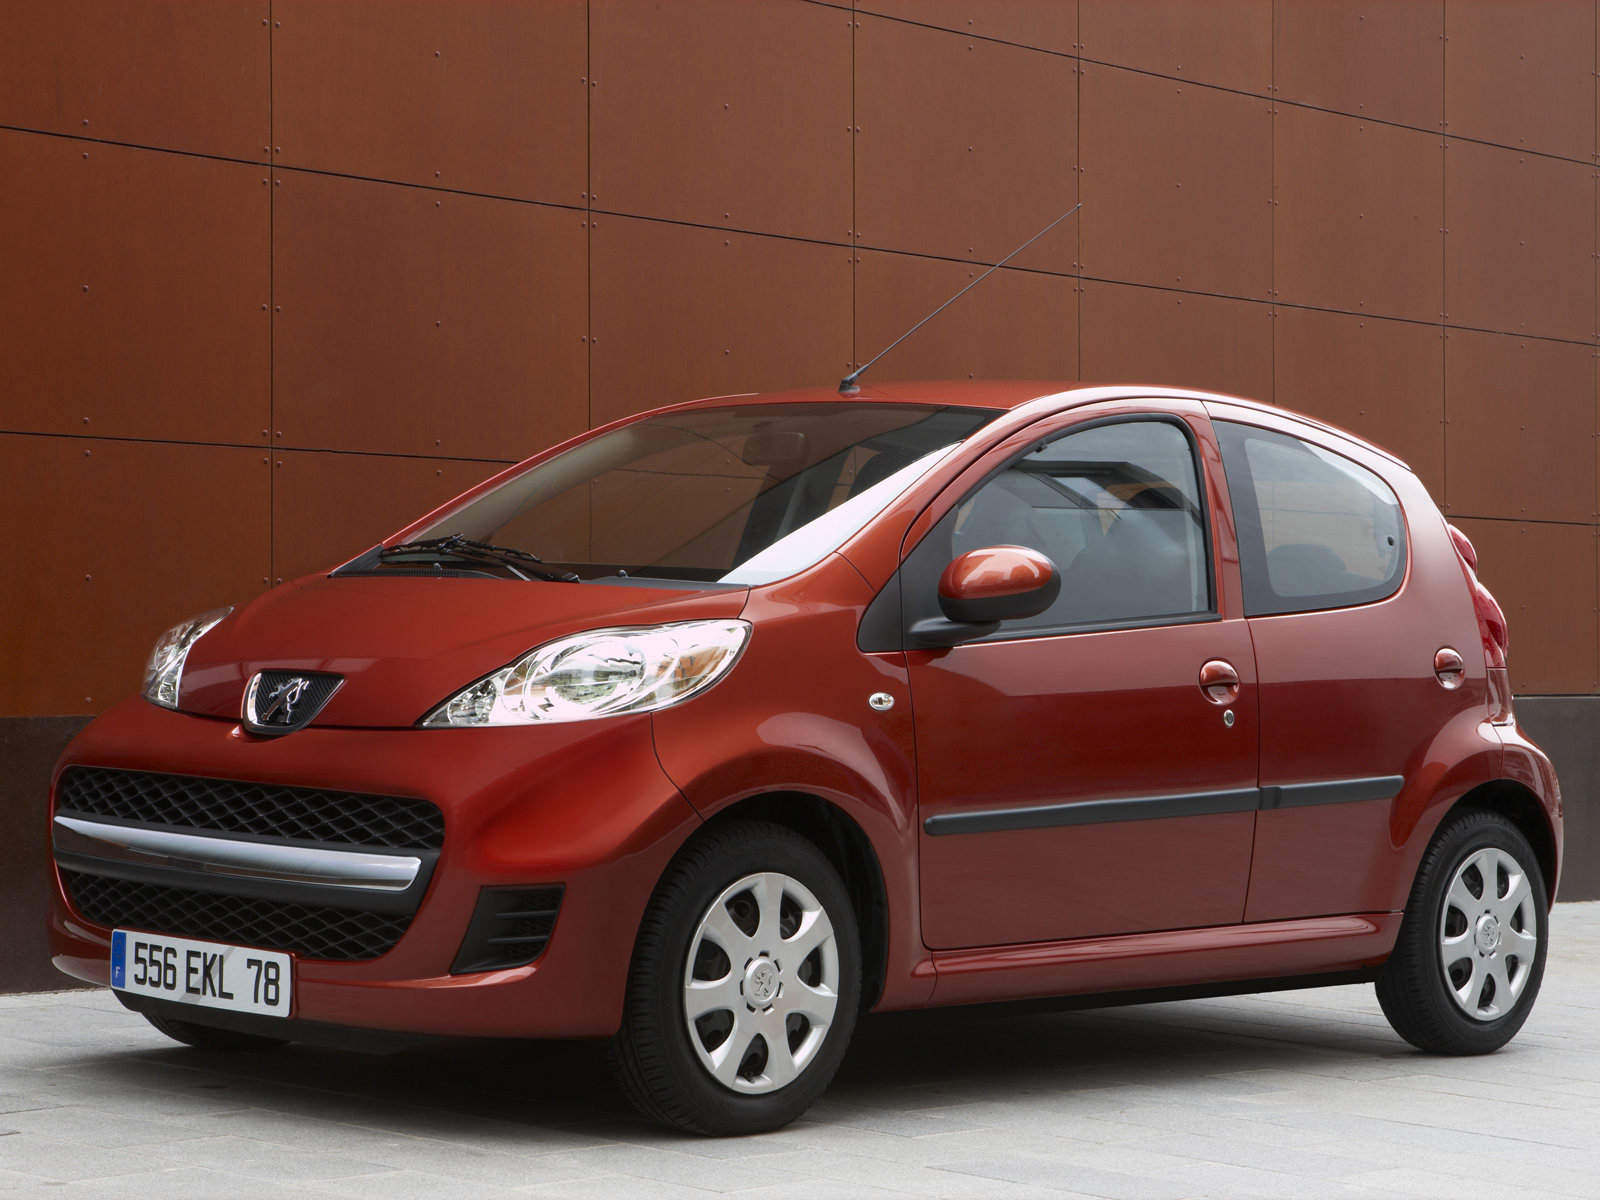 2009 PEUGEOT 107 pictures insurance informations